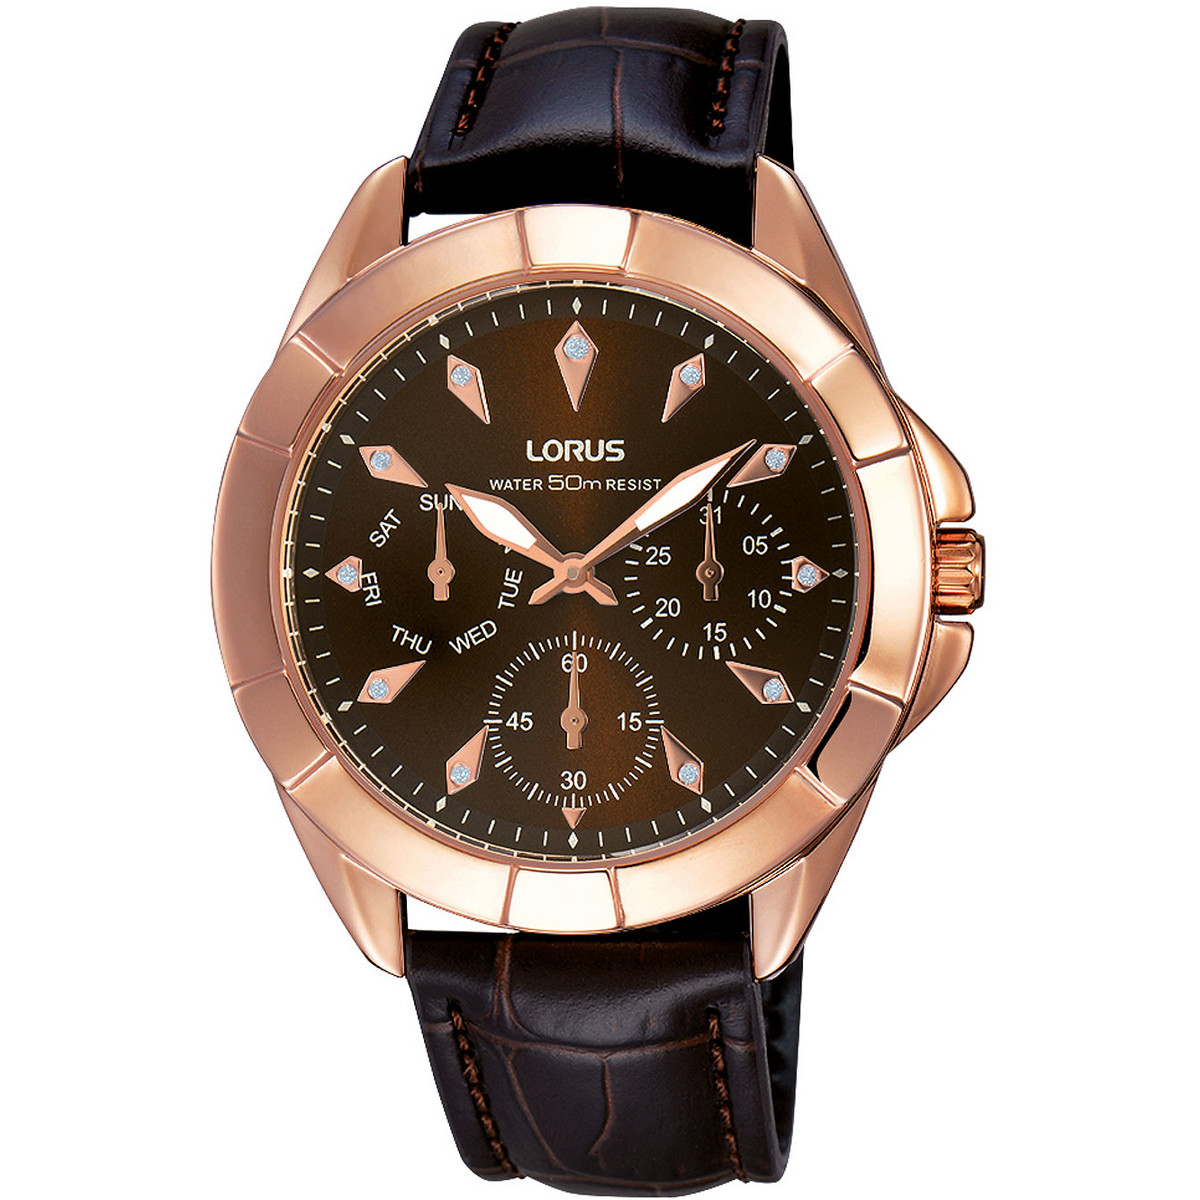 Ceas dama Lorus by Seiko Fashion RP636CX9 original de mana